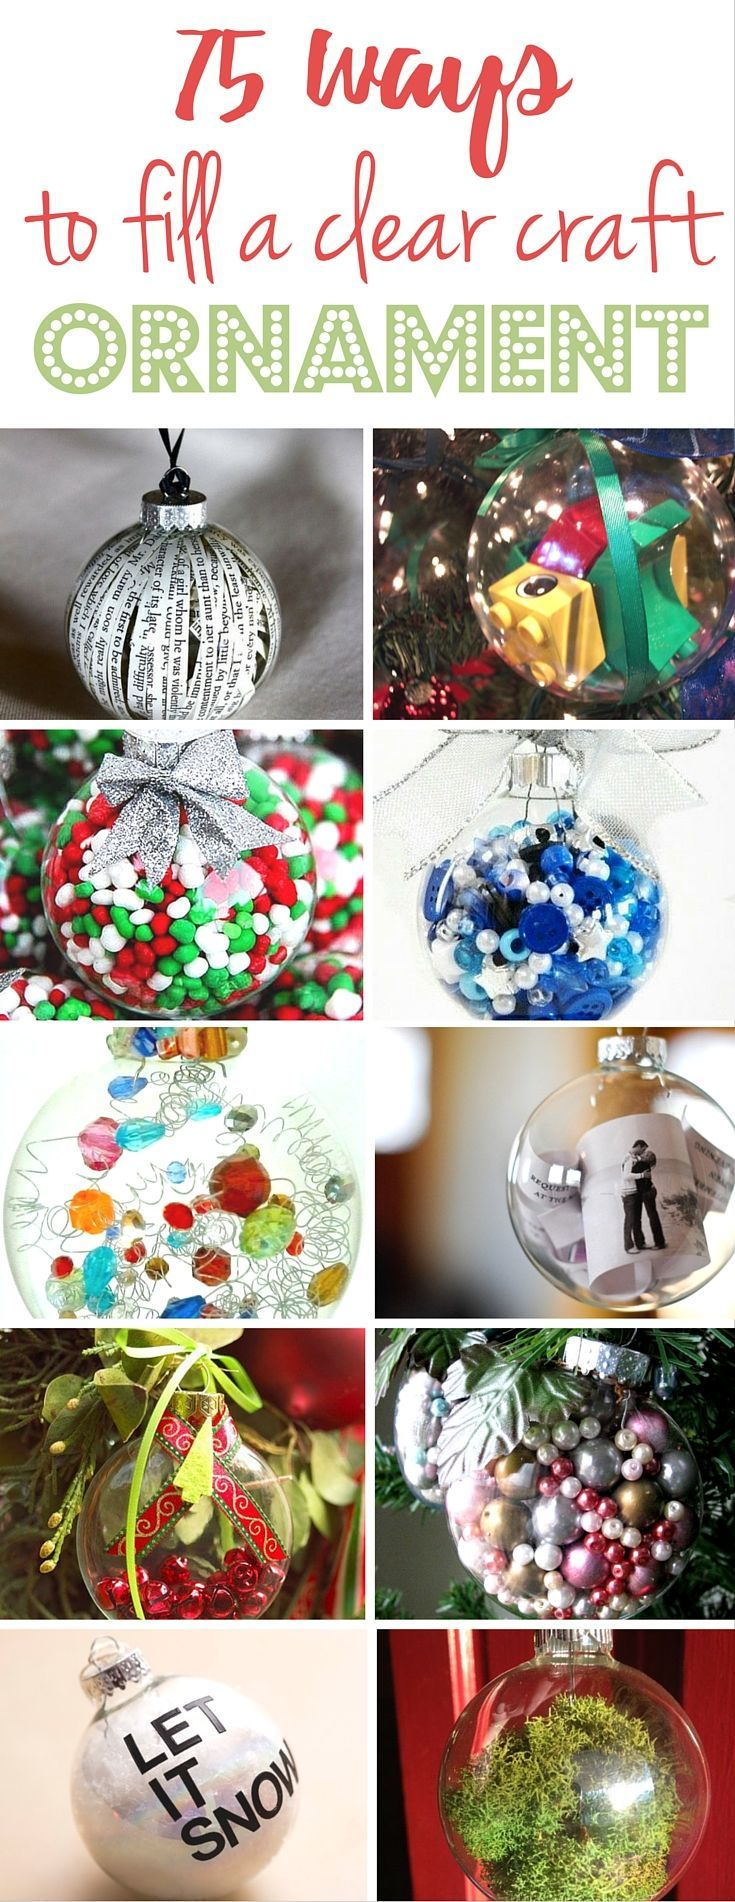 Uncategorized Ornament Ideas 25 unique homemade christmas ornaments ideas on pinterest salt 75 ways to fill a clear craft ornament and make christmas